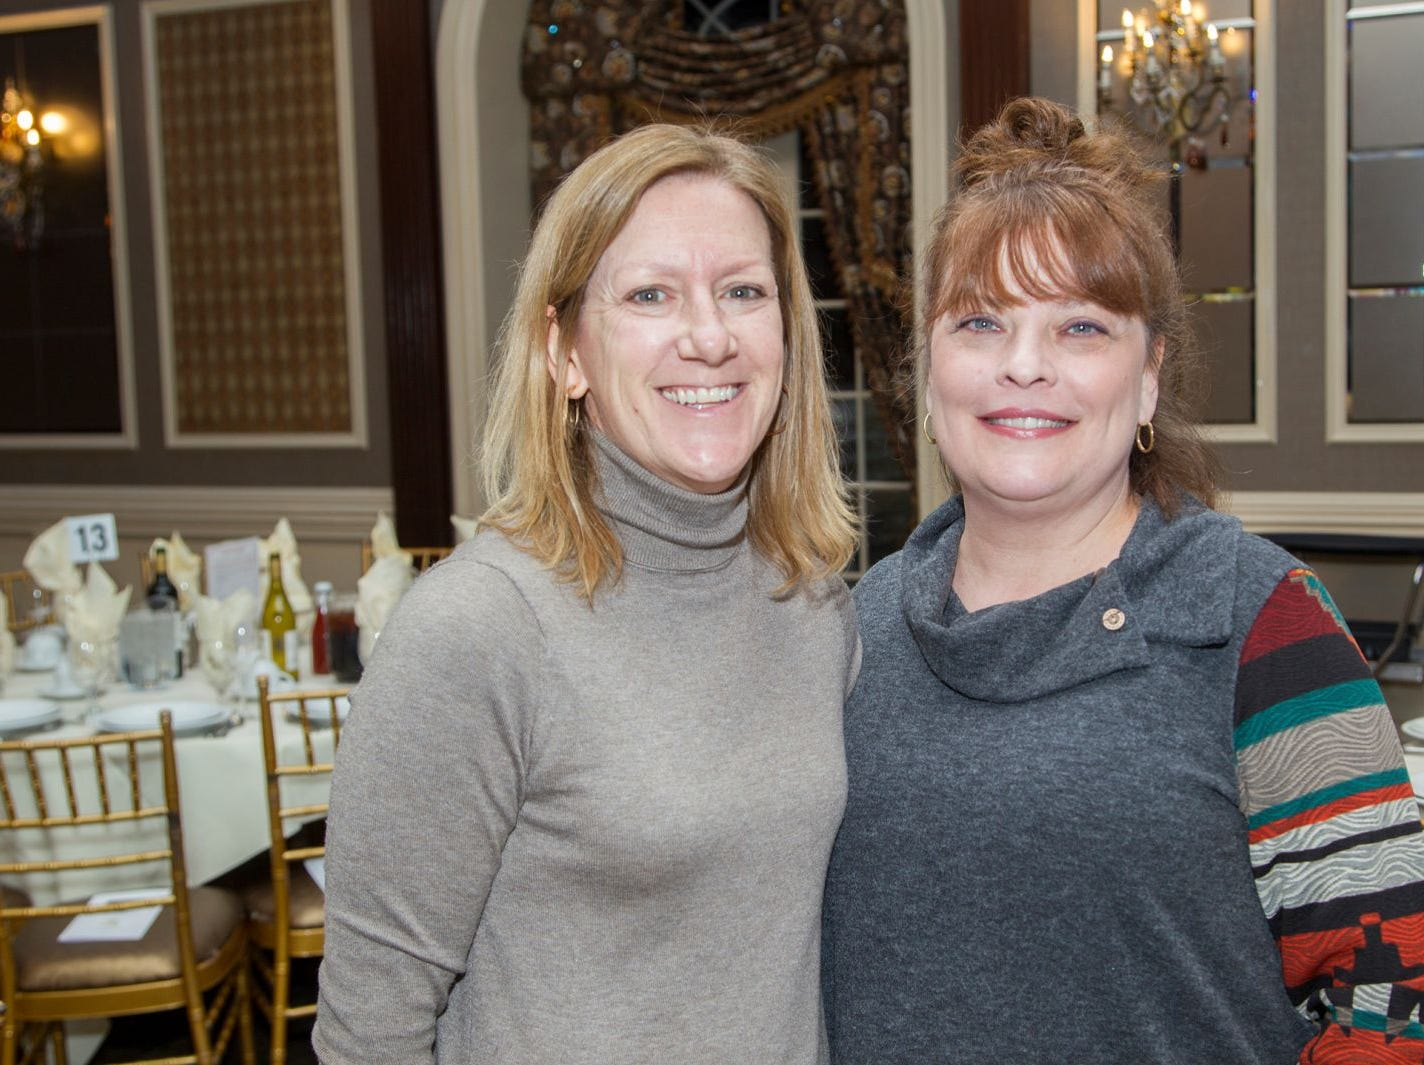 Audrey Pezzuti, Eileen Giordano.  A Night at the Races hosted by OASIS at the Brownstone in Paterson. 2/7/2019